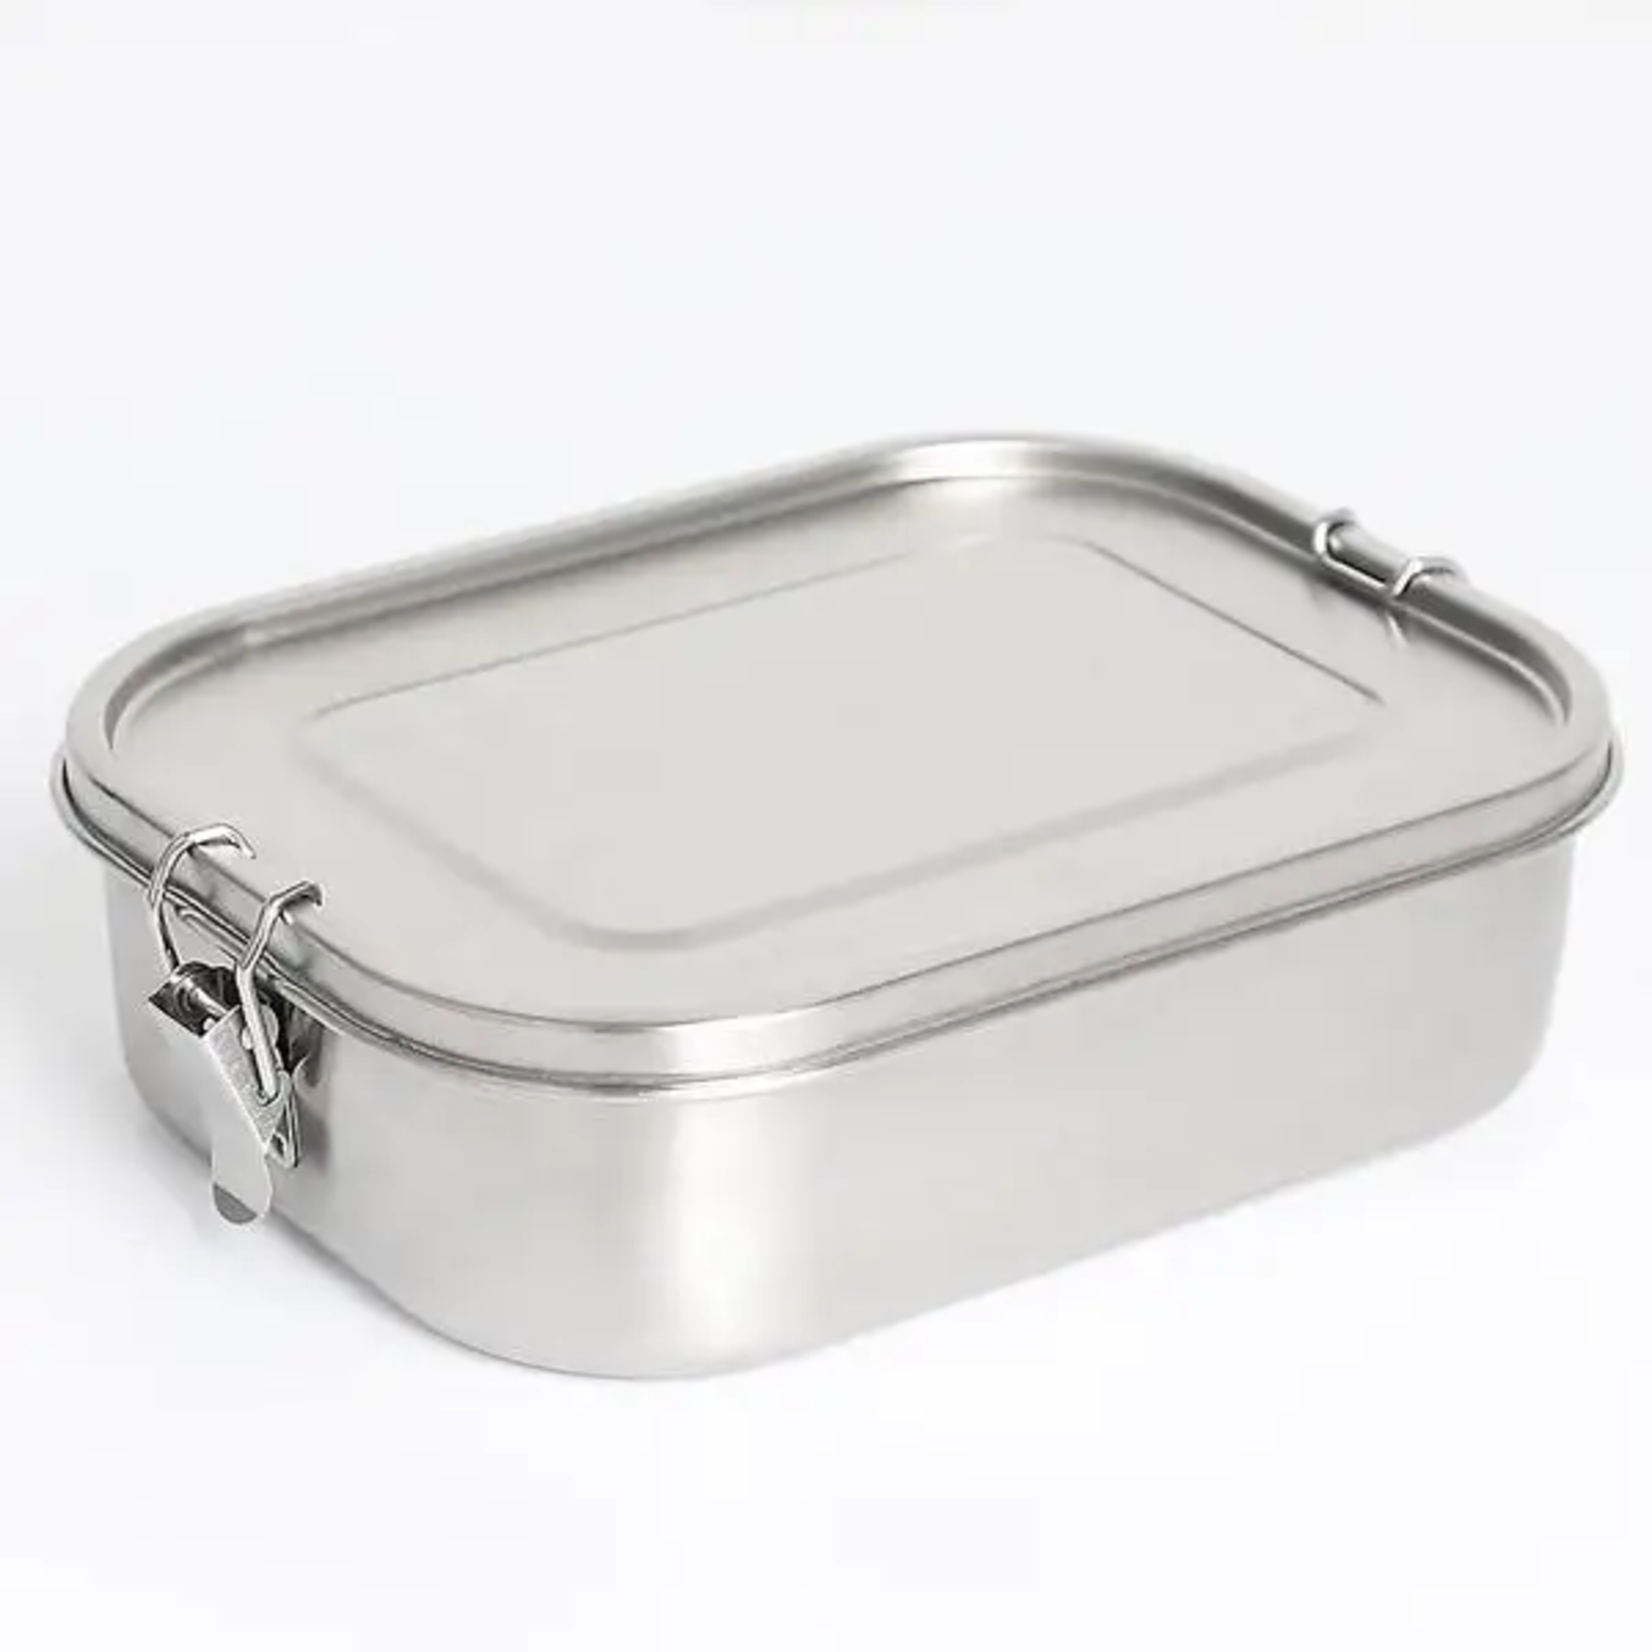 Let's Go Nature'al Let's Go Natureal Stainless Steel Lunch Box Small